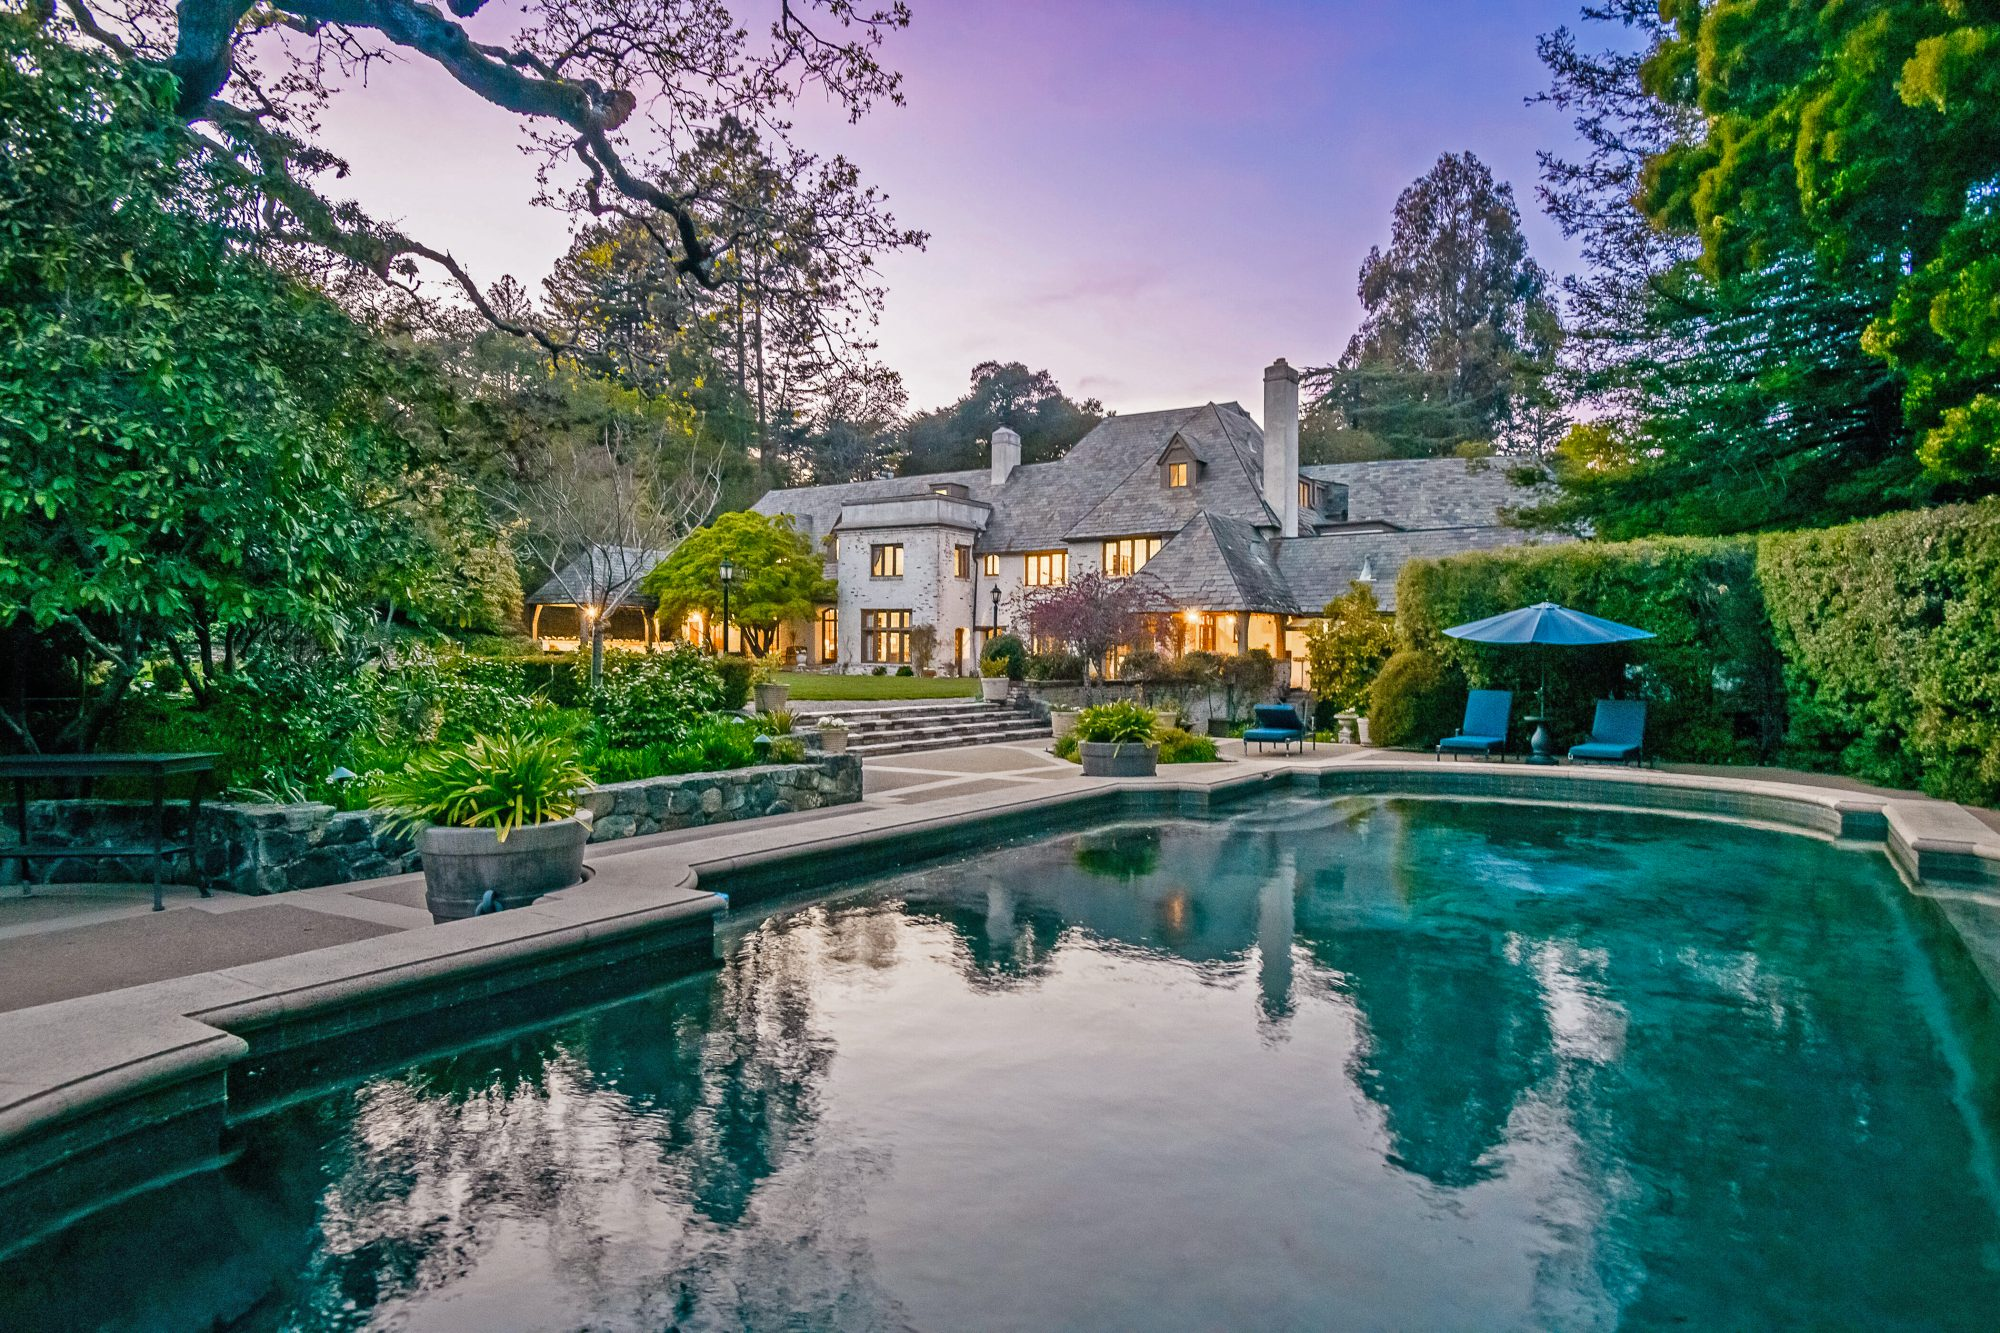 bing Crosby home for sale